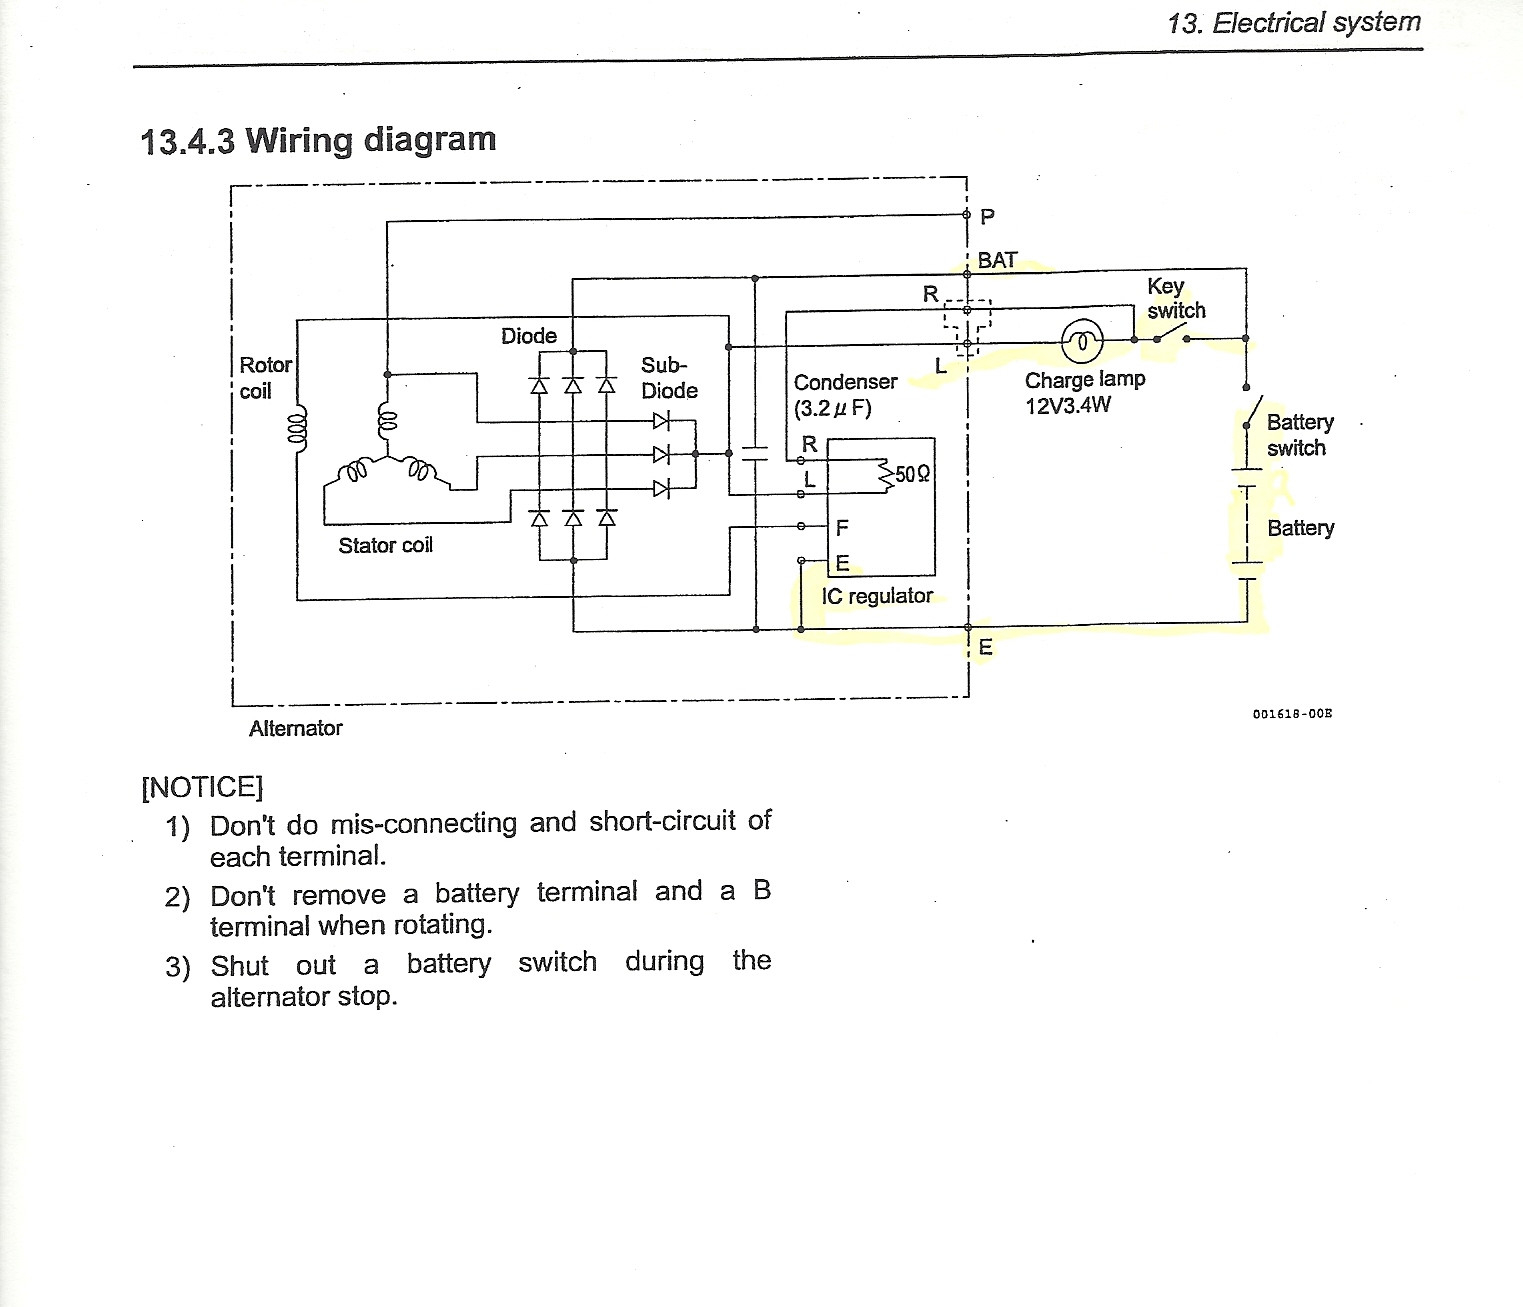 isuzu npr alternator wiring diagram Collection-Isuzu Alternator Wiring Diagram New isuzu Npr Alternator Wiring Diagram 16-i